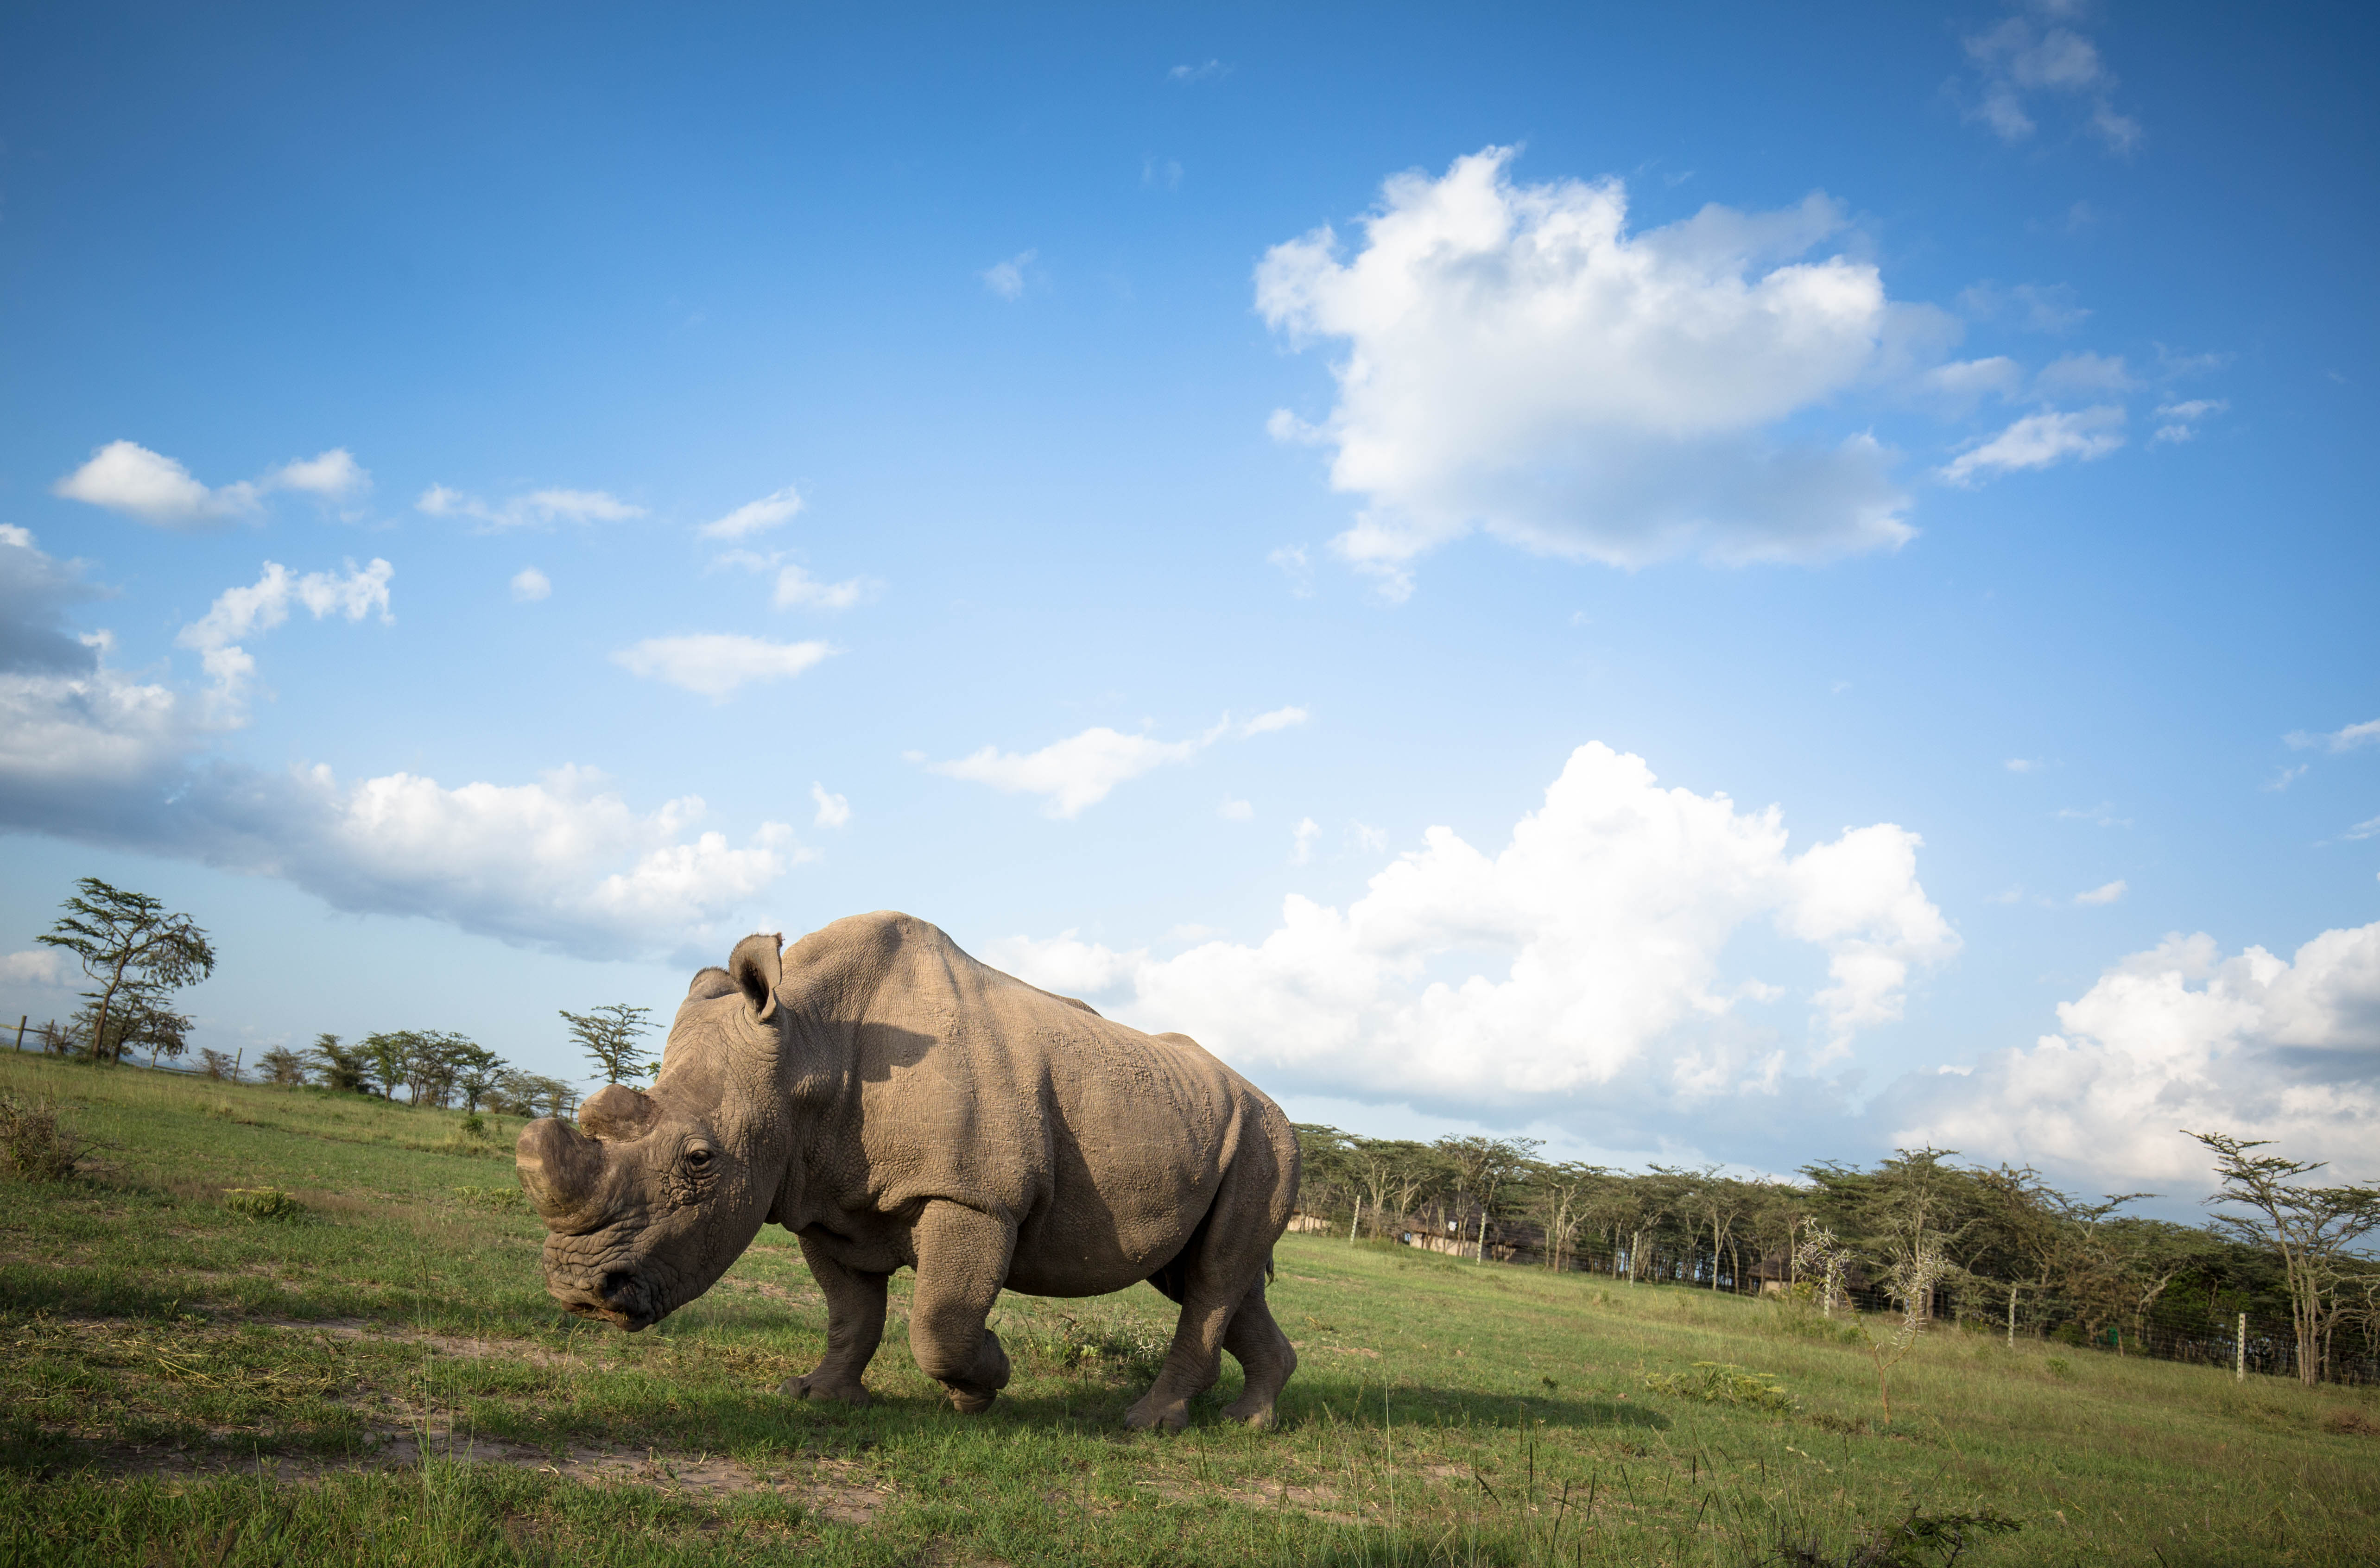 Rhinoceros on field with gentle sunlight behind him